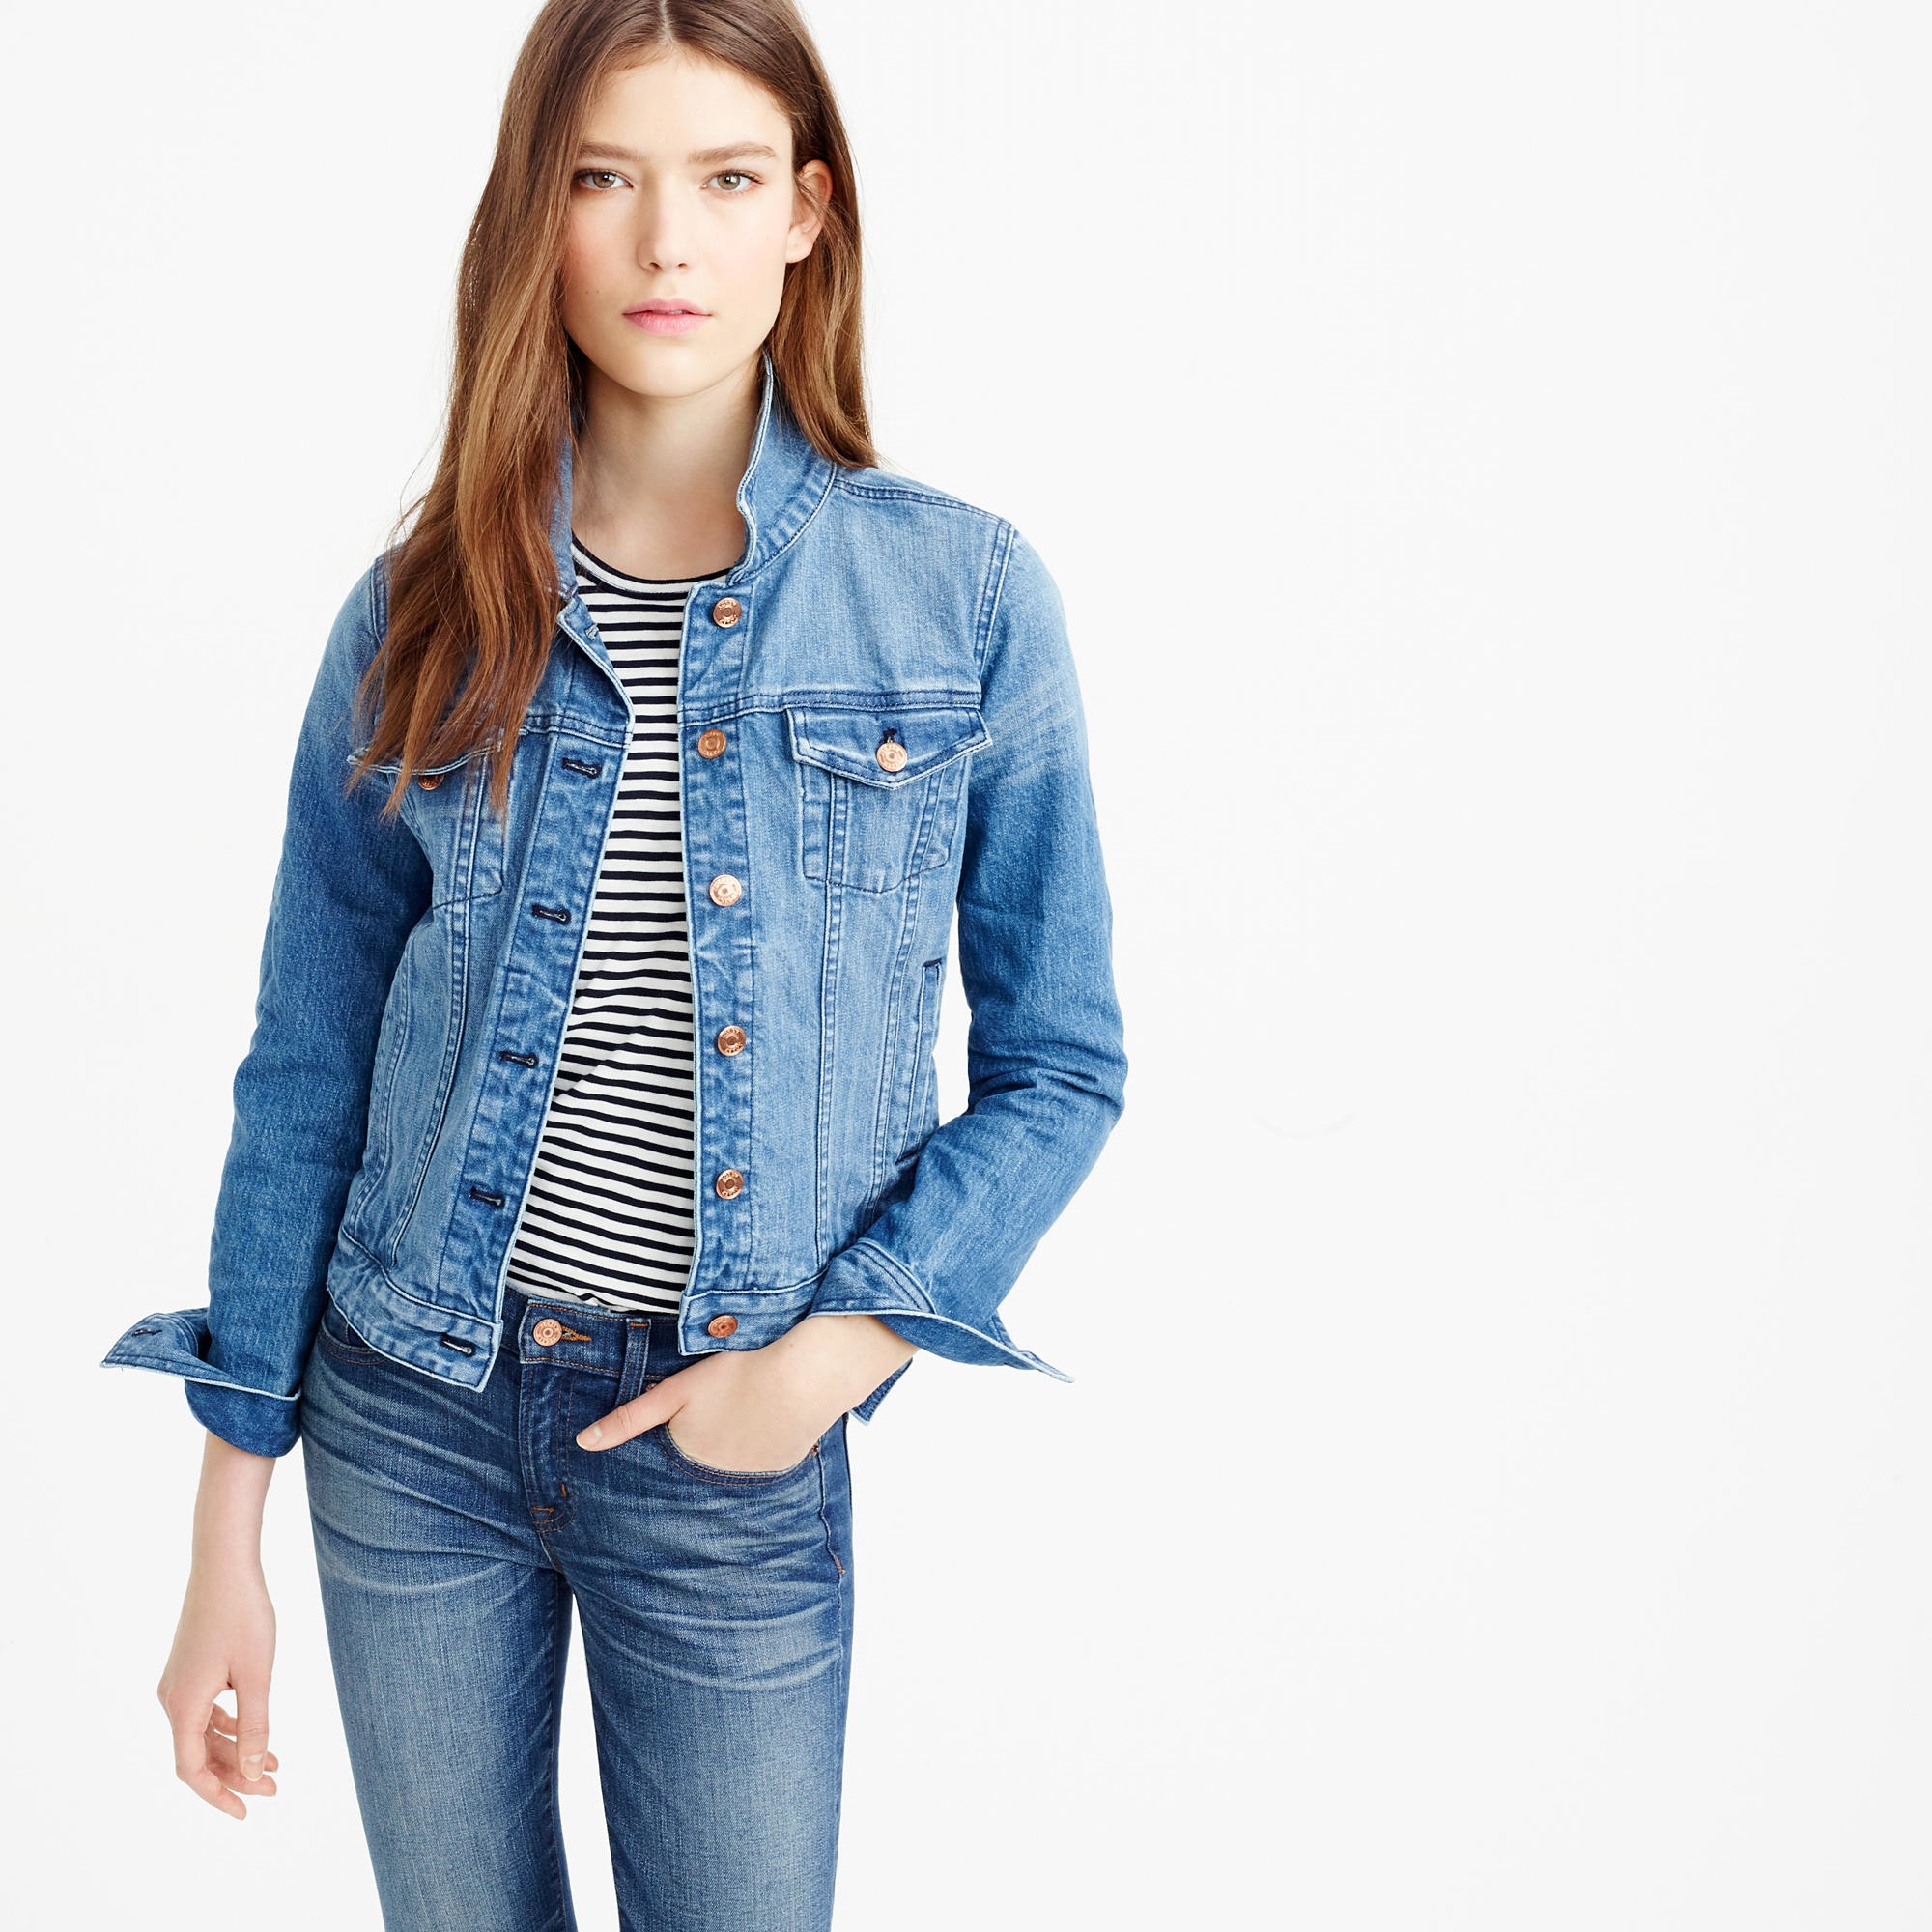 Jcrew Premium Stretch Denim Jacket In Blue  Lyst-3408